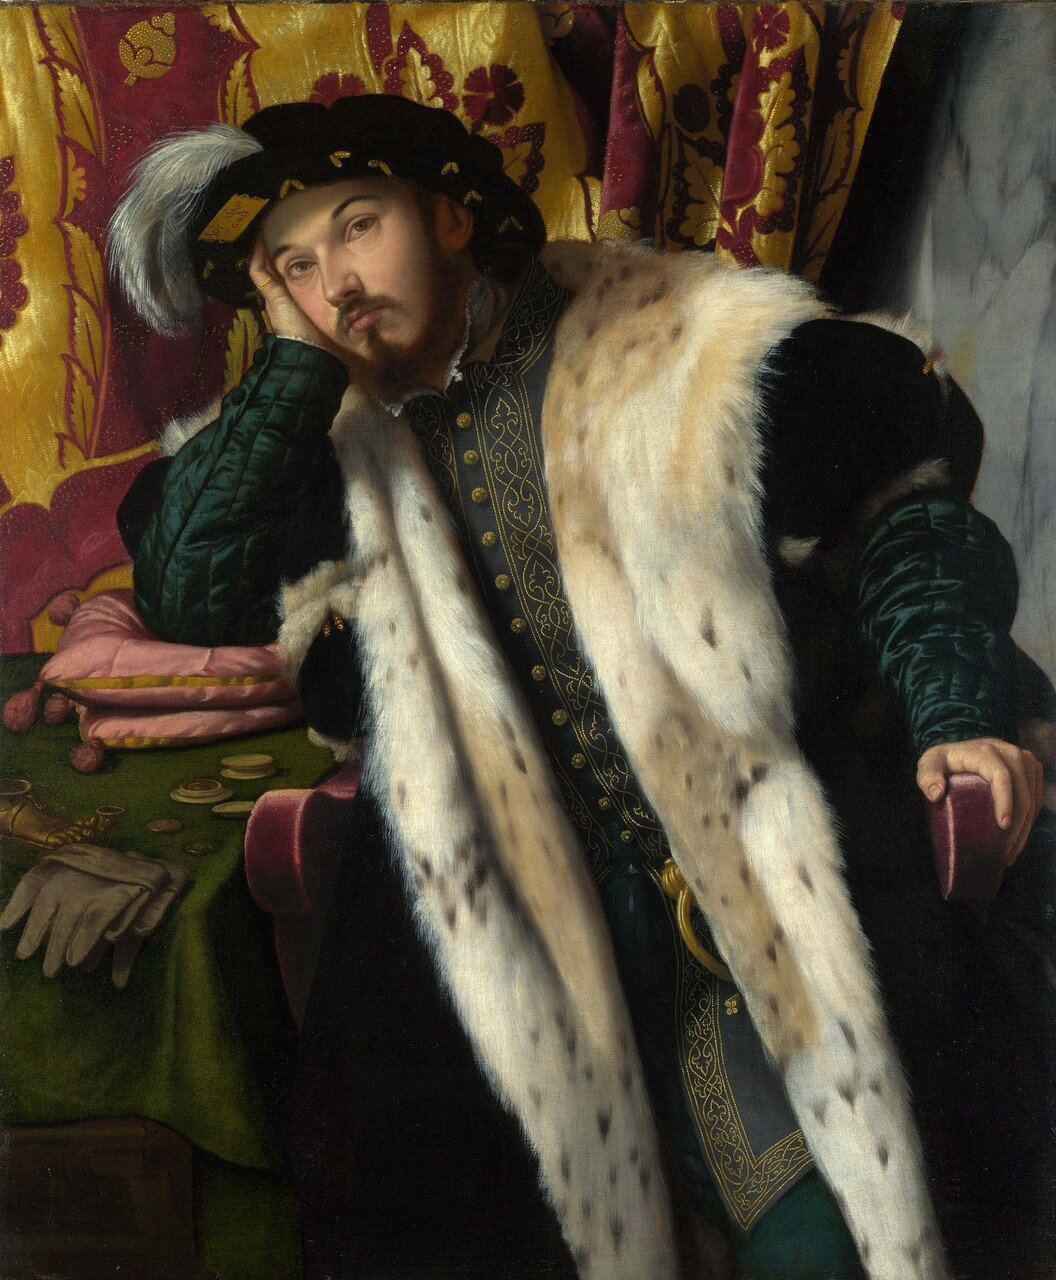 about 1540-5